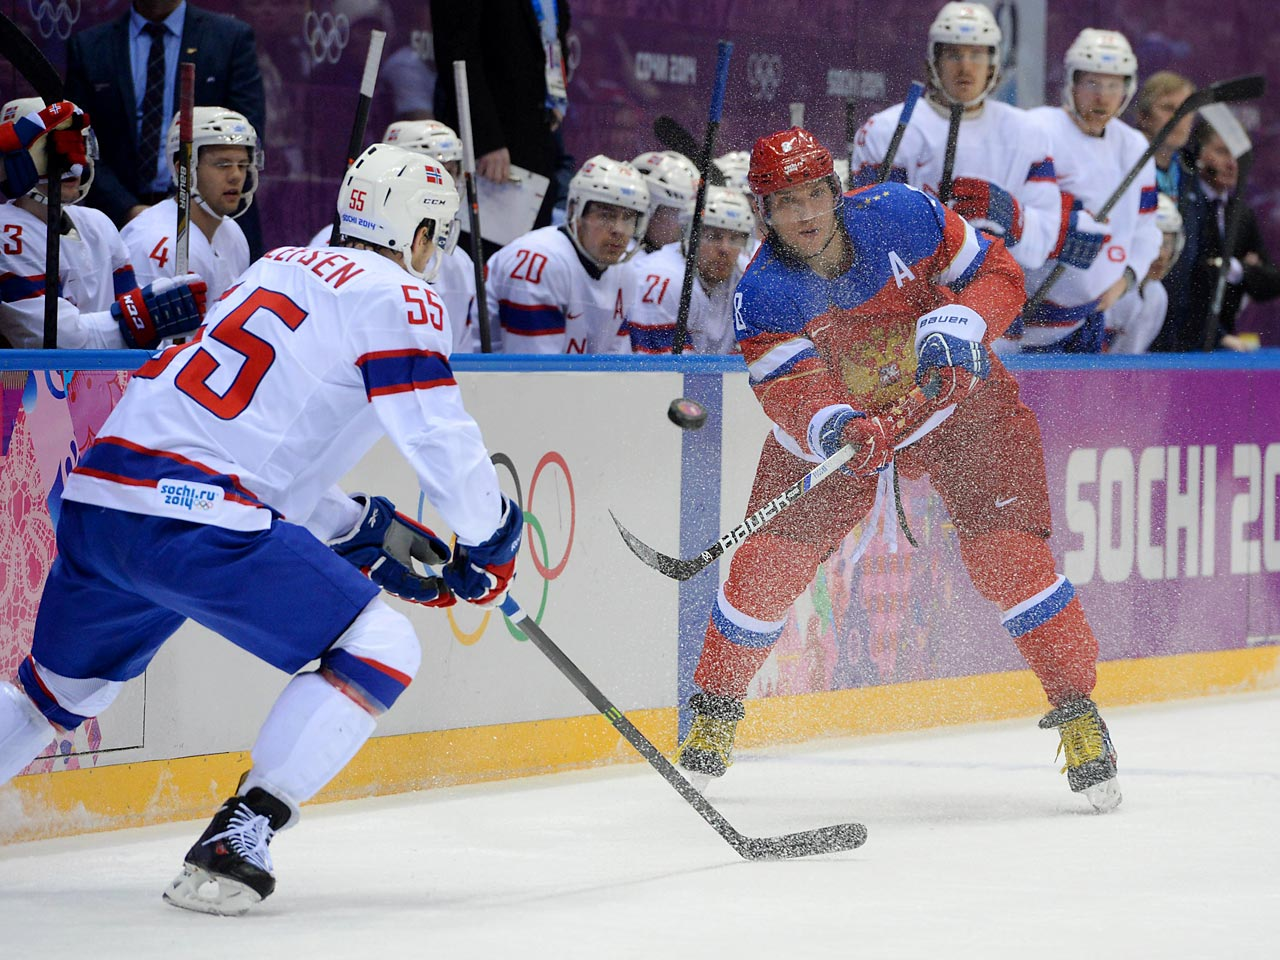 Russian Alexander Ovechkin hurls the puck down the ice as Ole-Kristian Tollefsen of Norway defends.